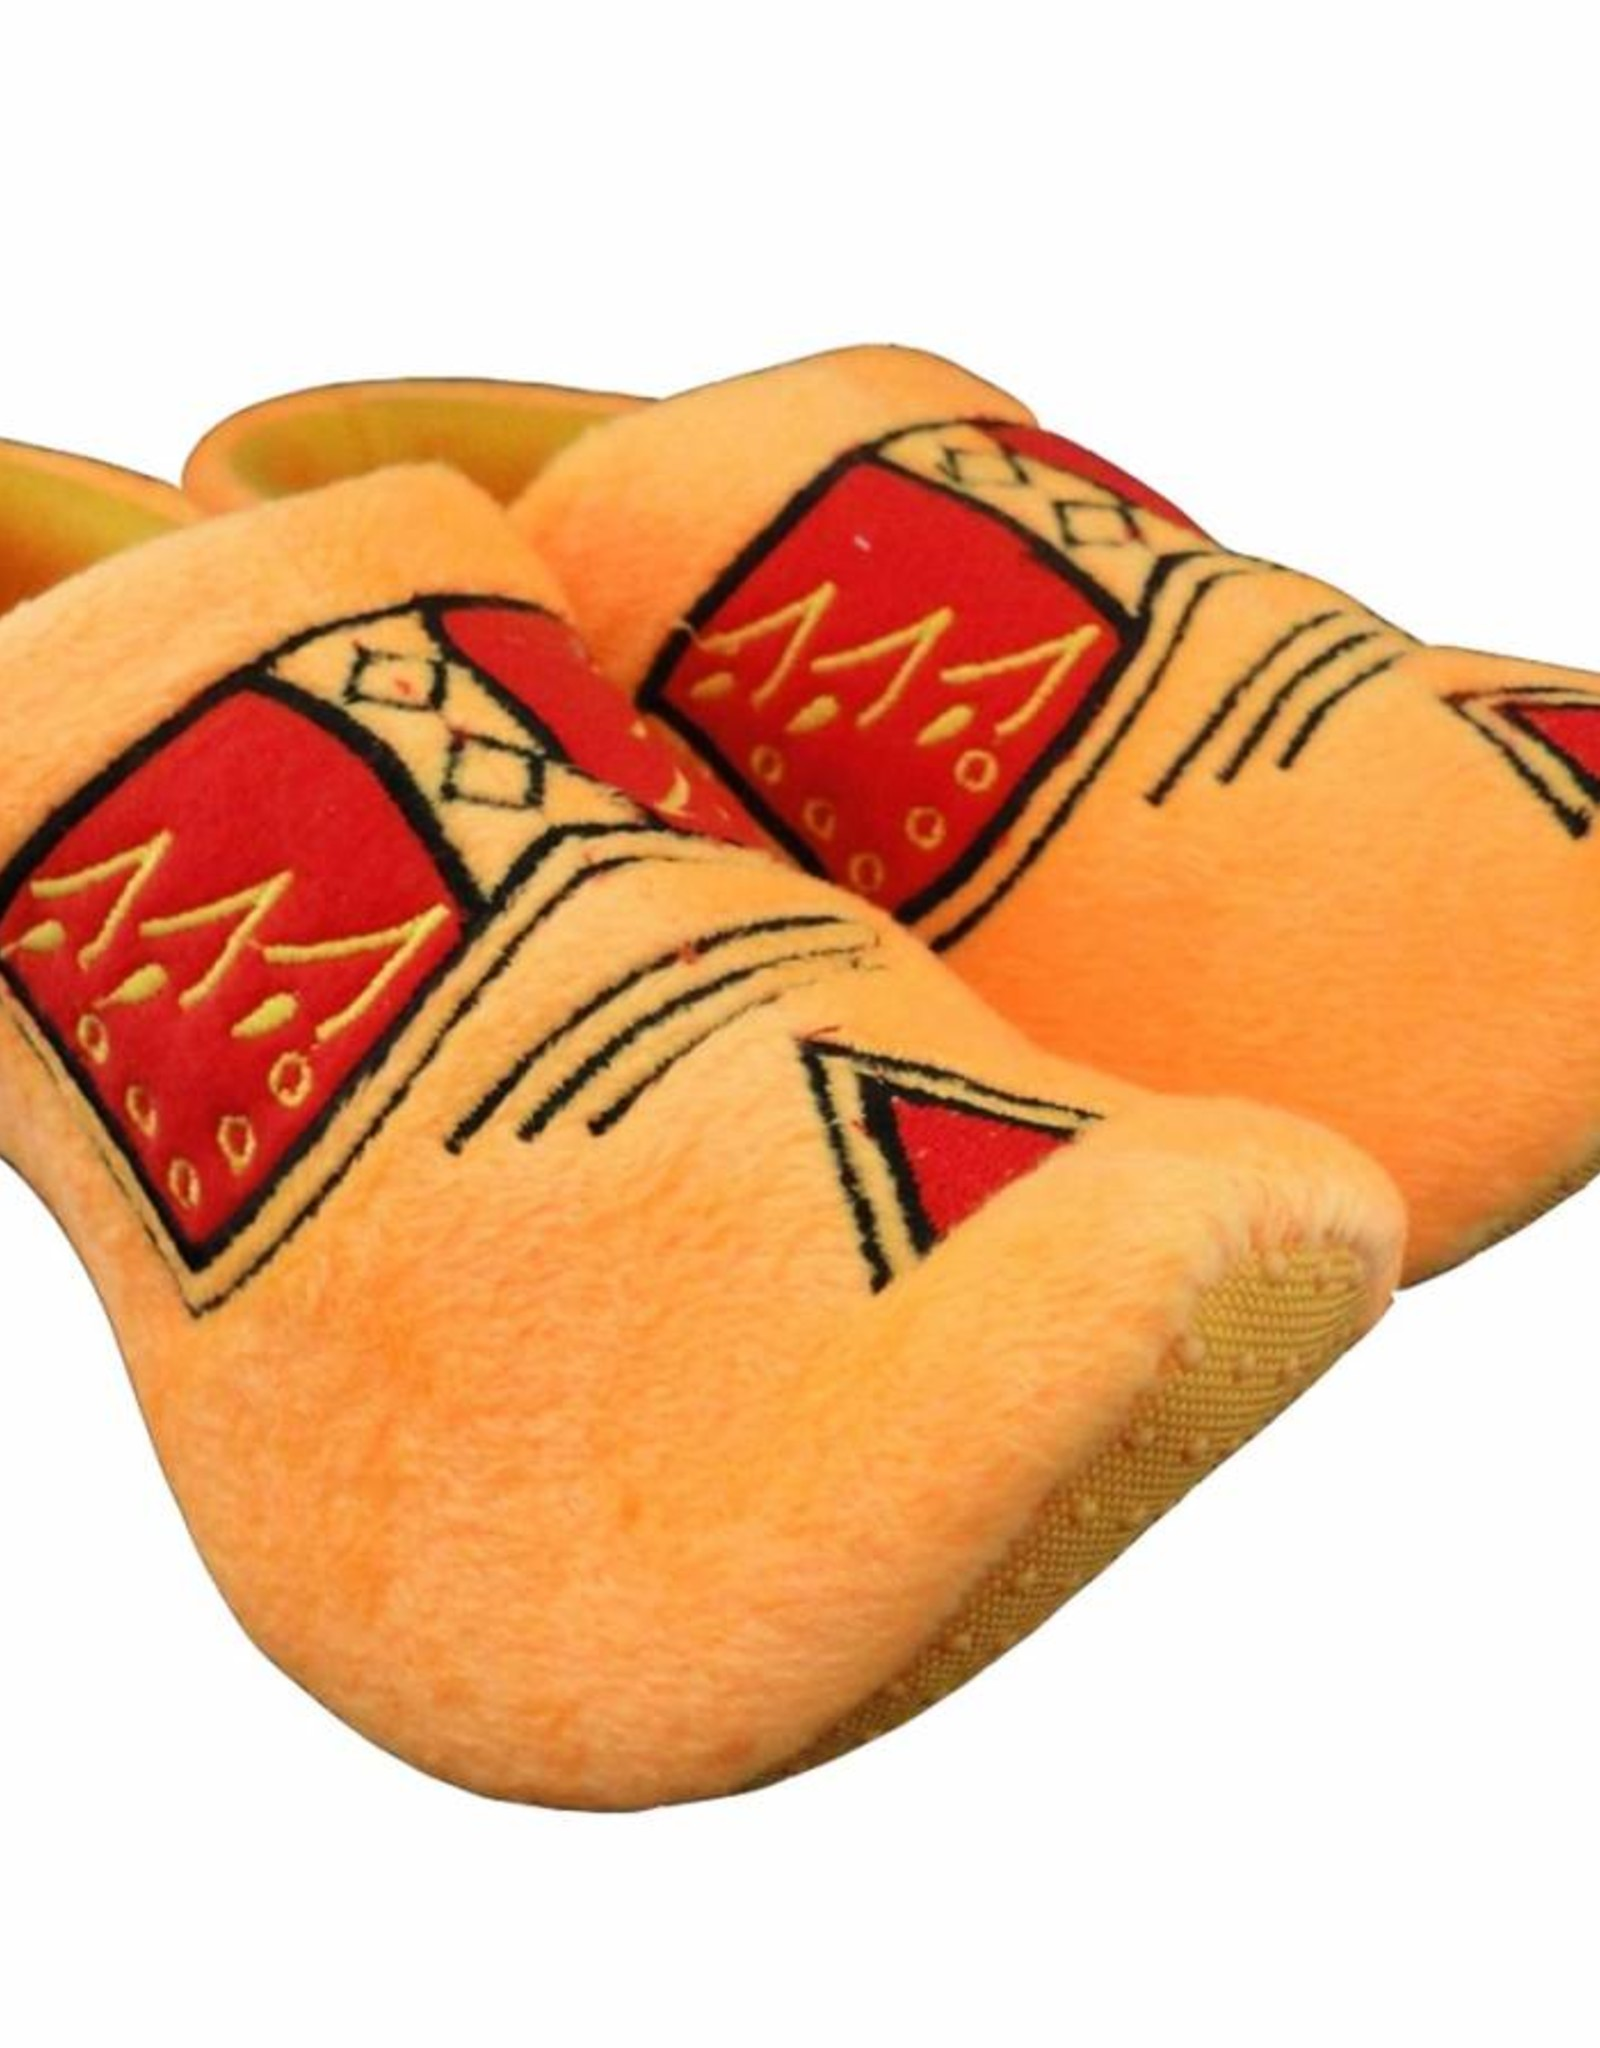 Farmer yellow woodenshoe slippers